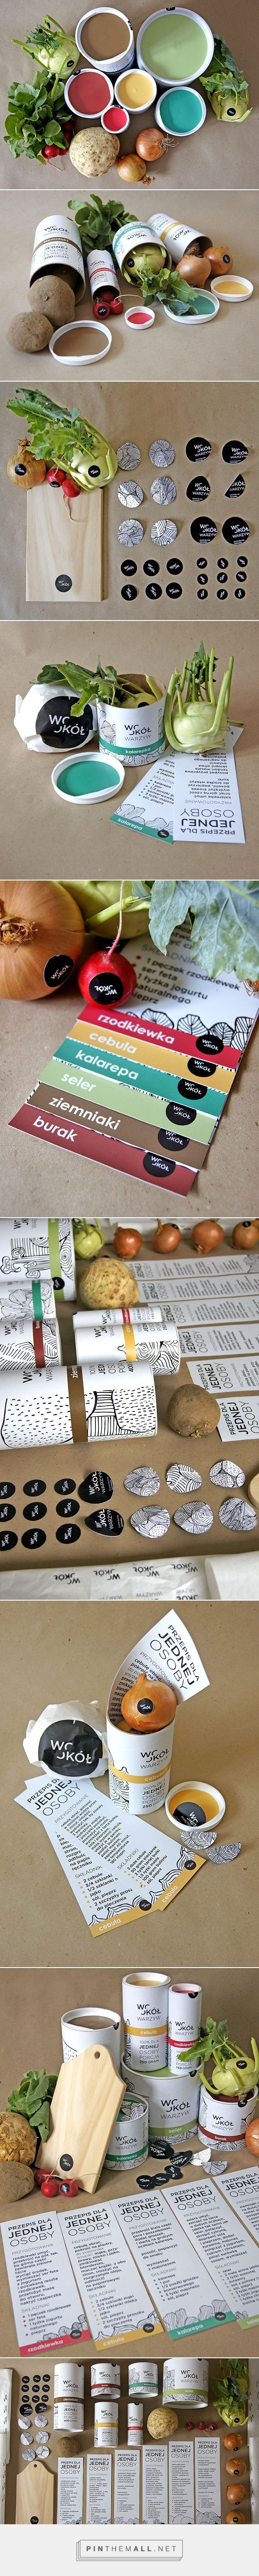 (a)round vegetables by Martyna Wędzicka on Behance curated by Packaging Diva PD. How  fun is this graduation project packaging for round vegetables.